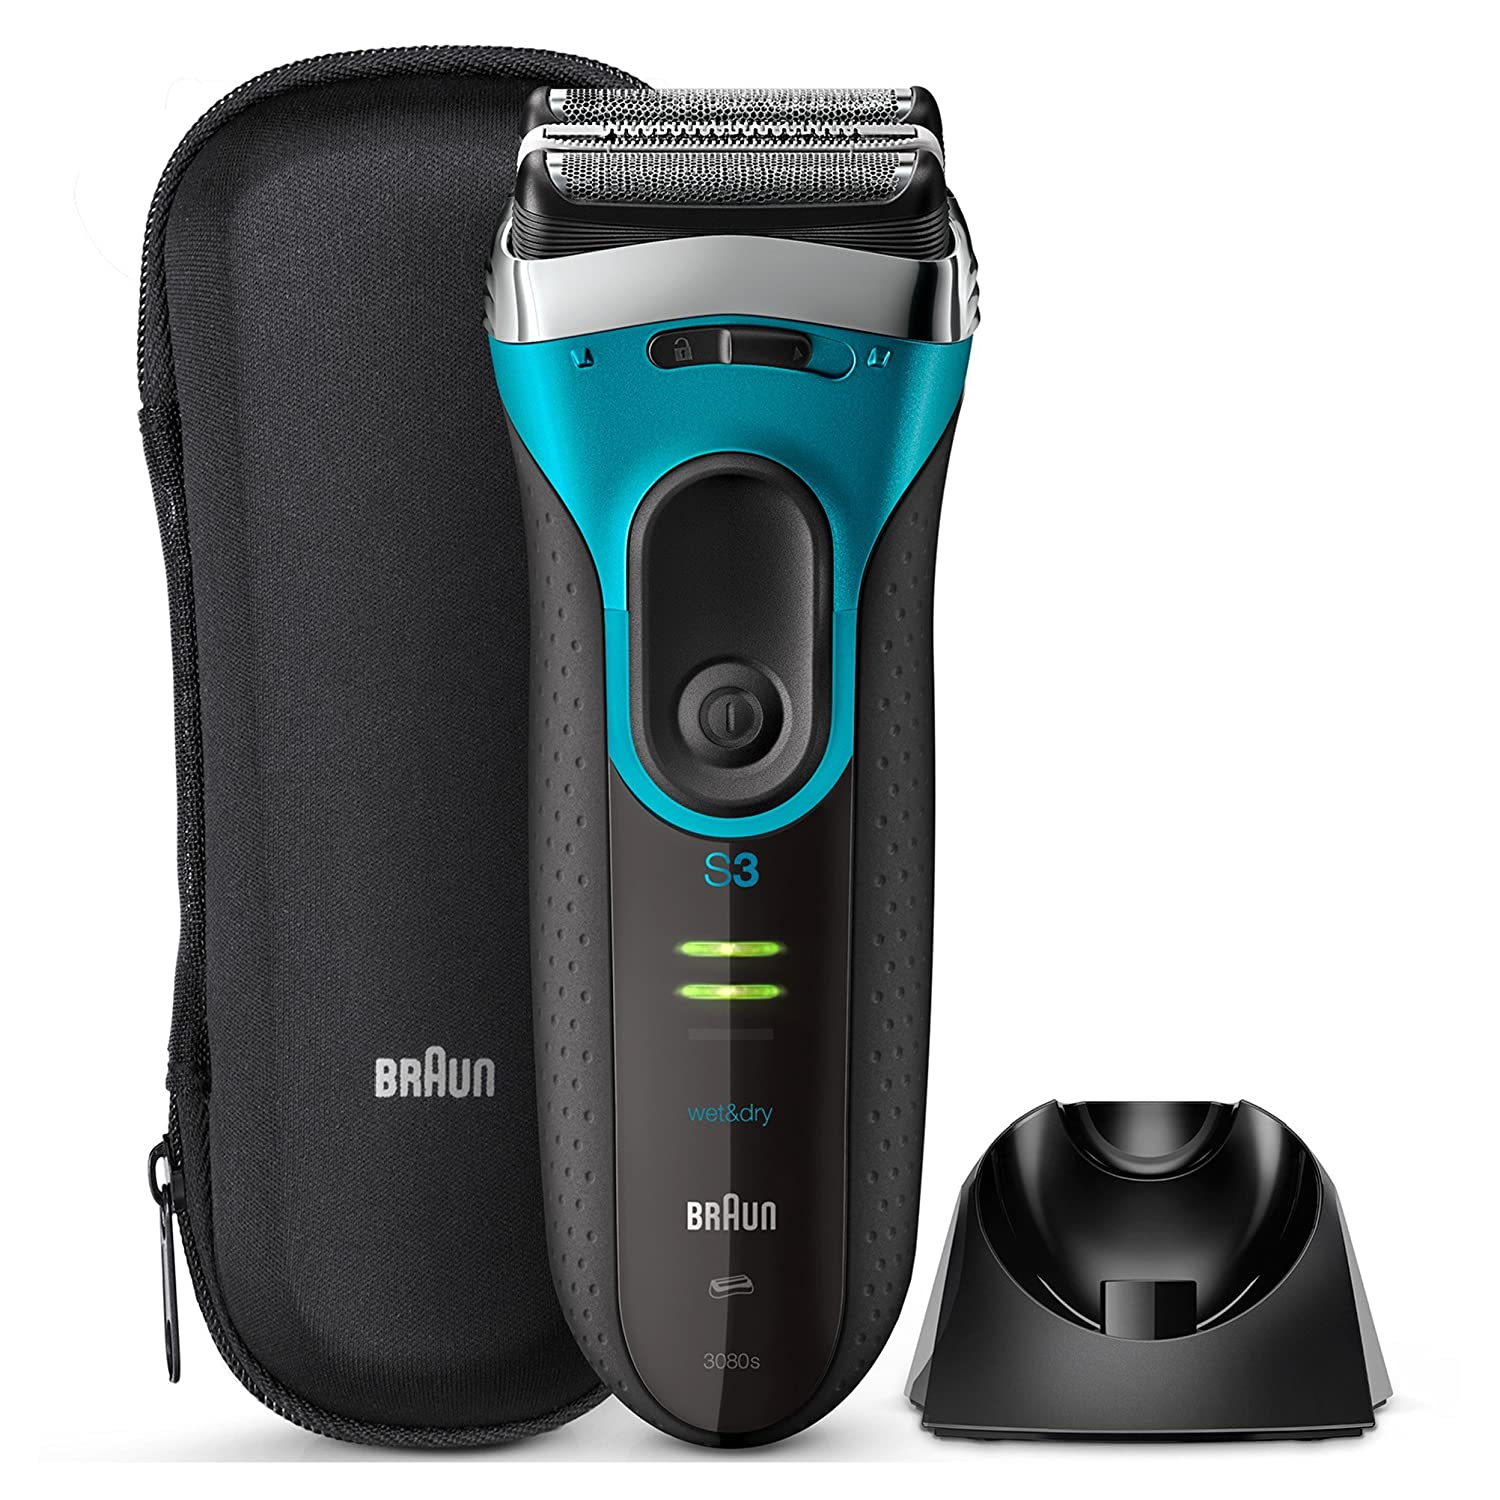 Braun Series 3 ProSkin 3080s Electric Shaver, Wet and Dry Electric Razor for Men with Pop Up Precision Trimmer and Charging Stand, Rechargeable and Cordless Shaver, Black/Blue Procter & Gamble